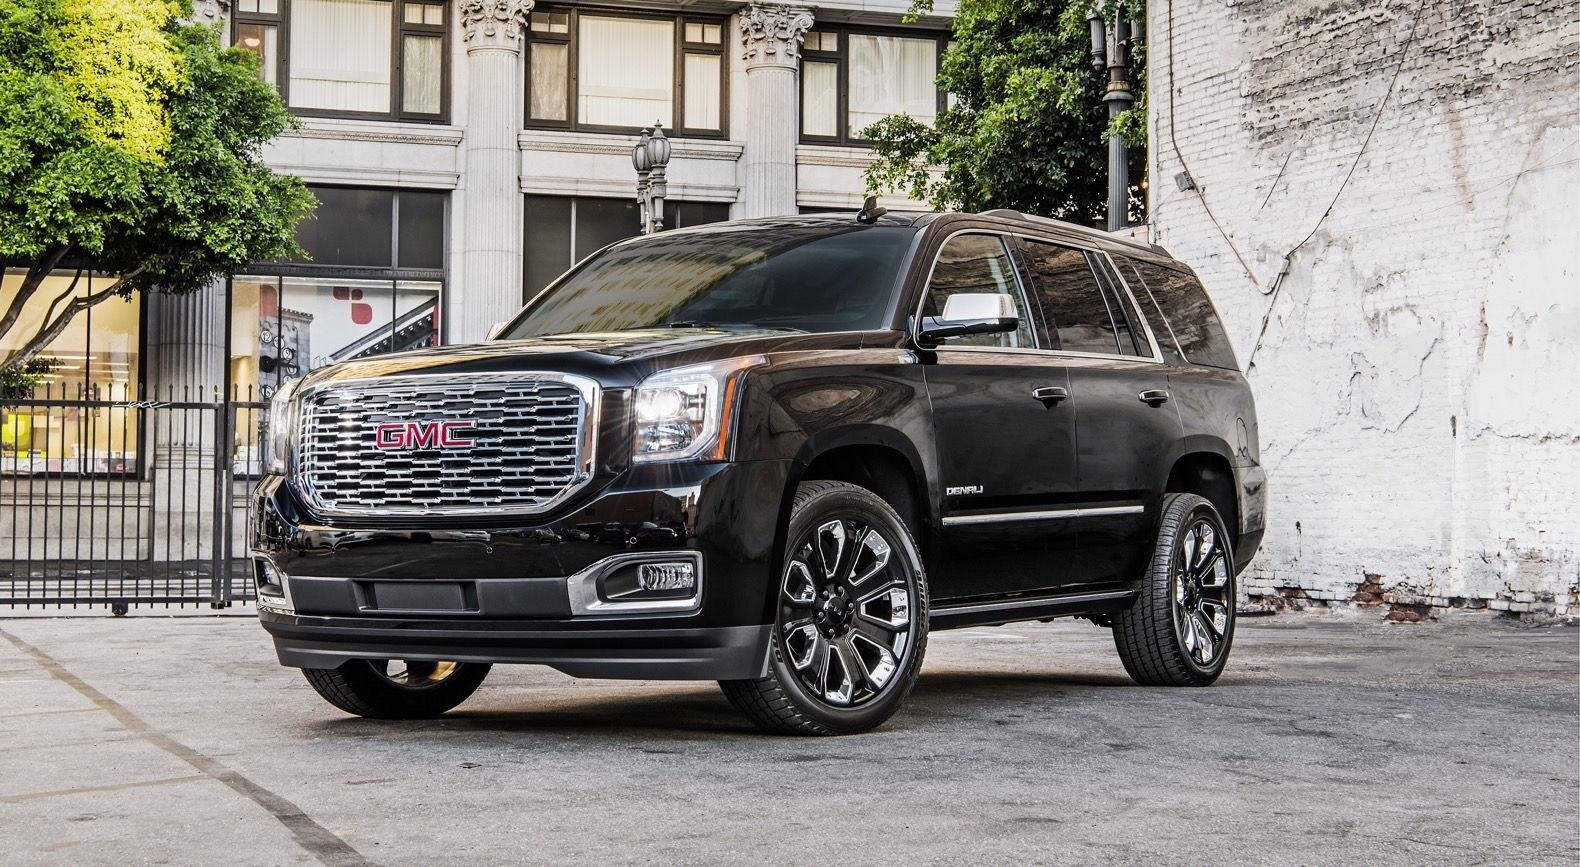 Beautiful 2019 Yukon Denali Ultimate Black Package Gmc Trucks Gmc Suv Gmc